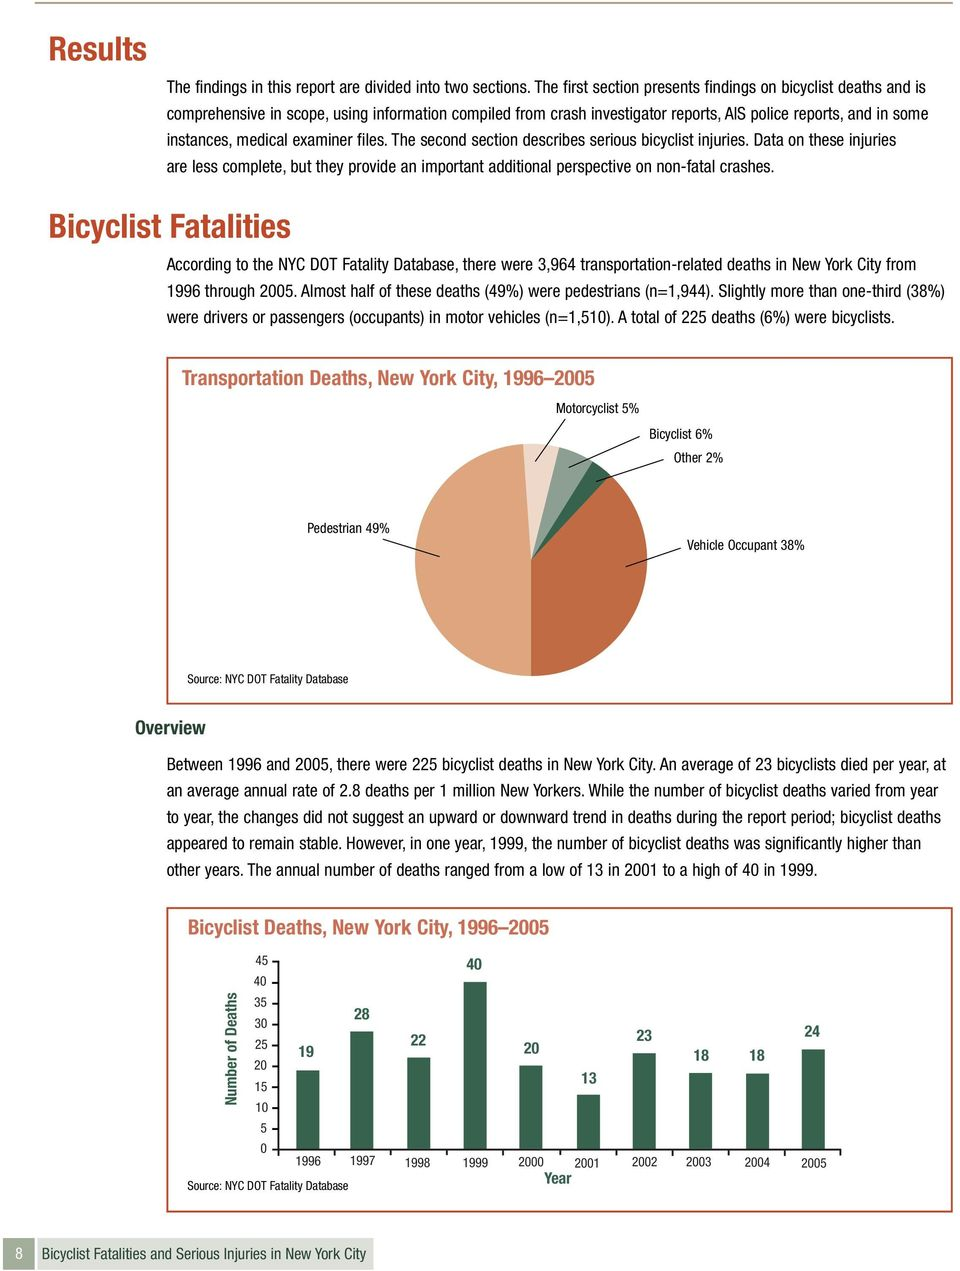 examiner files. The second section describes serious bicyclist injuries. Data on these injuries are less complete, but they provide an important additional perspective on non-fatal crashes.